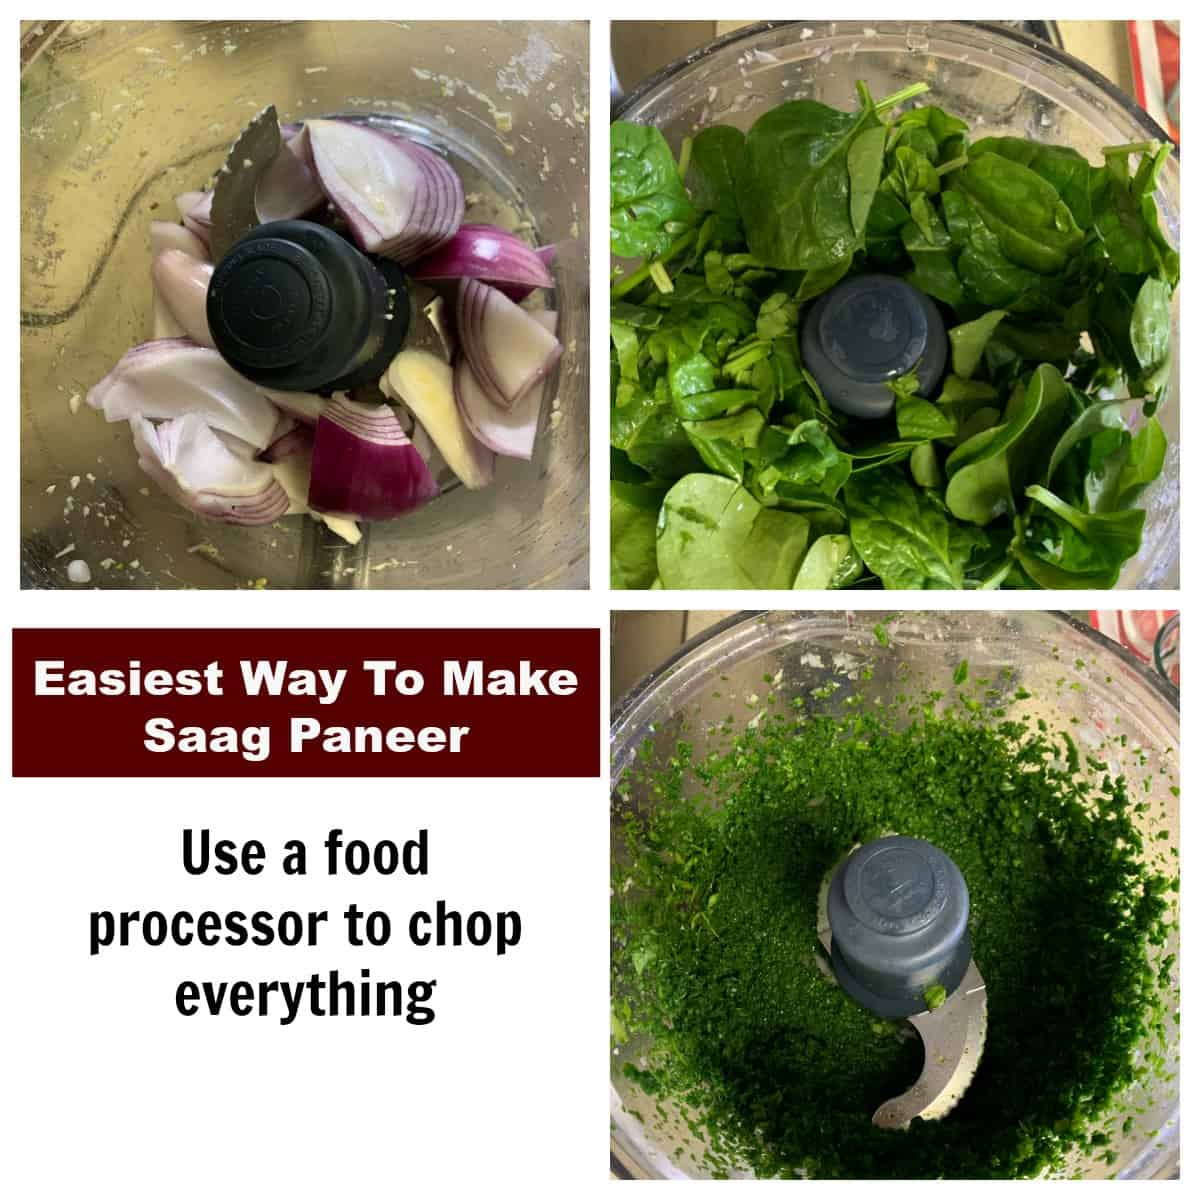 Steps to crush ingredients in a food processor to make saag